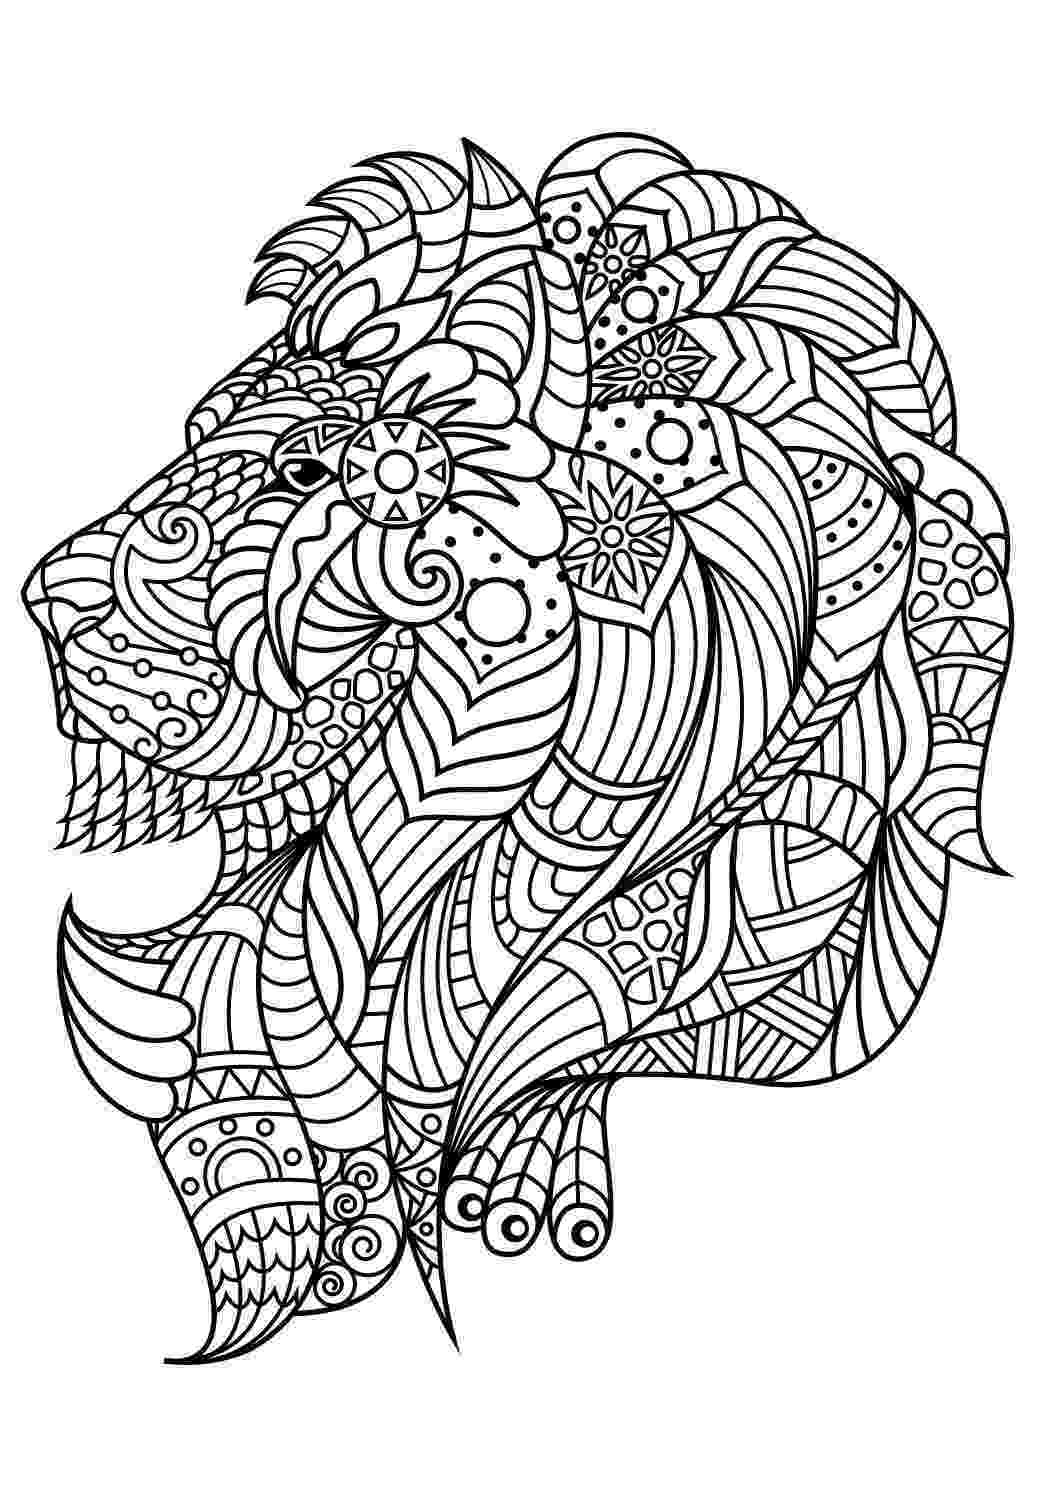 coloring pages animals animal coloring pages best coloring pages for kids animals pages coloring